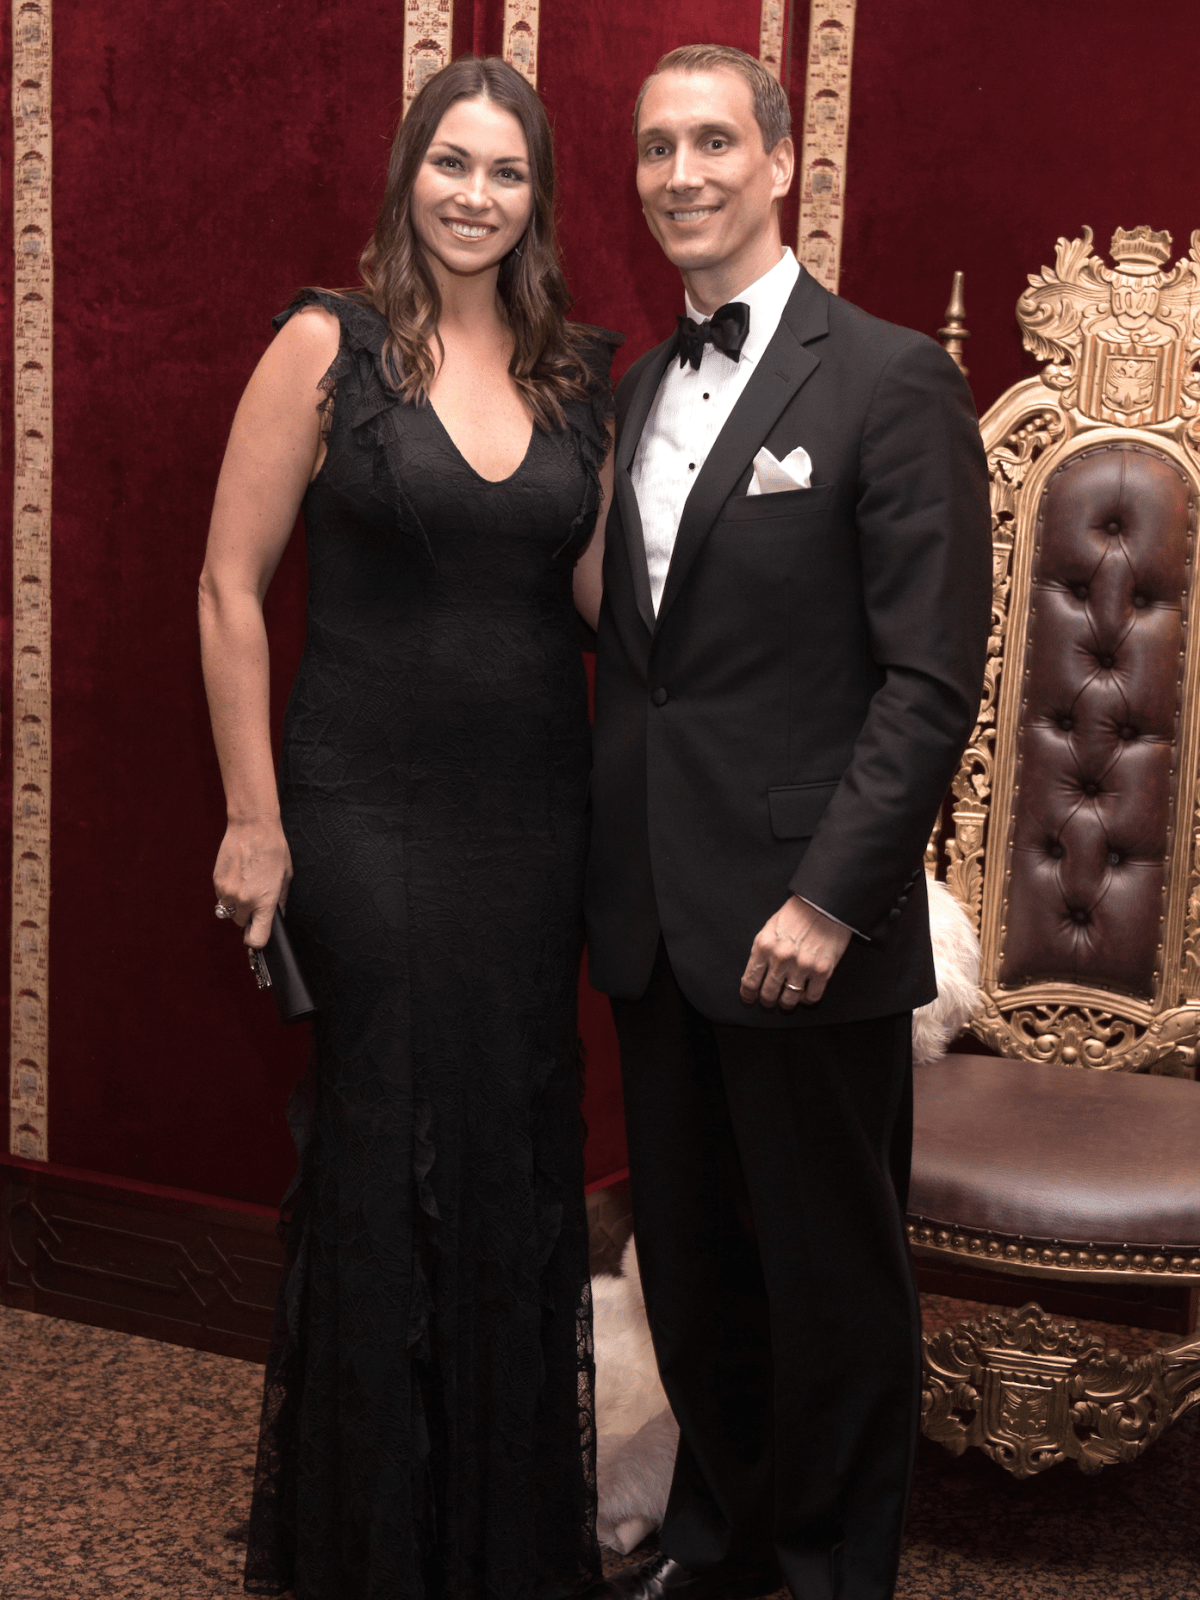 Houston, Ballet Ball social story, March 2017, Beth Zdeblick, Nick Zdeblick